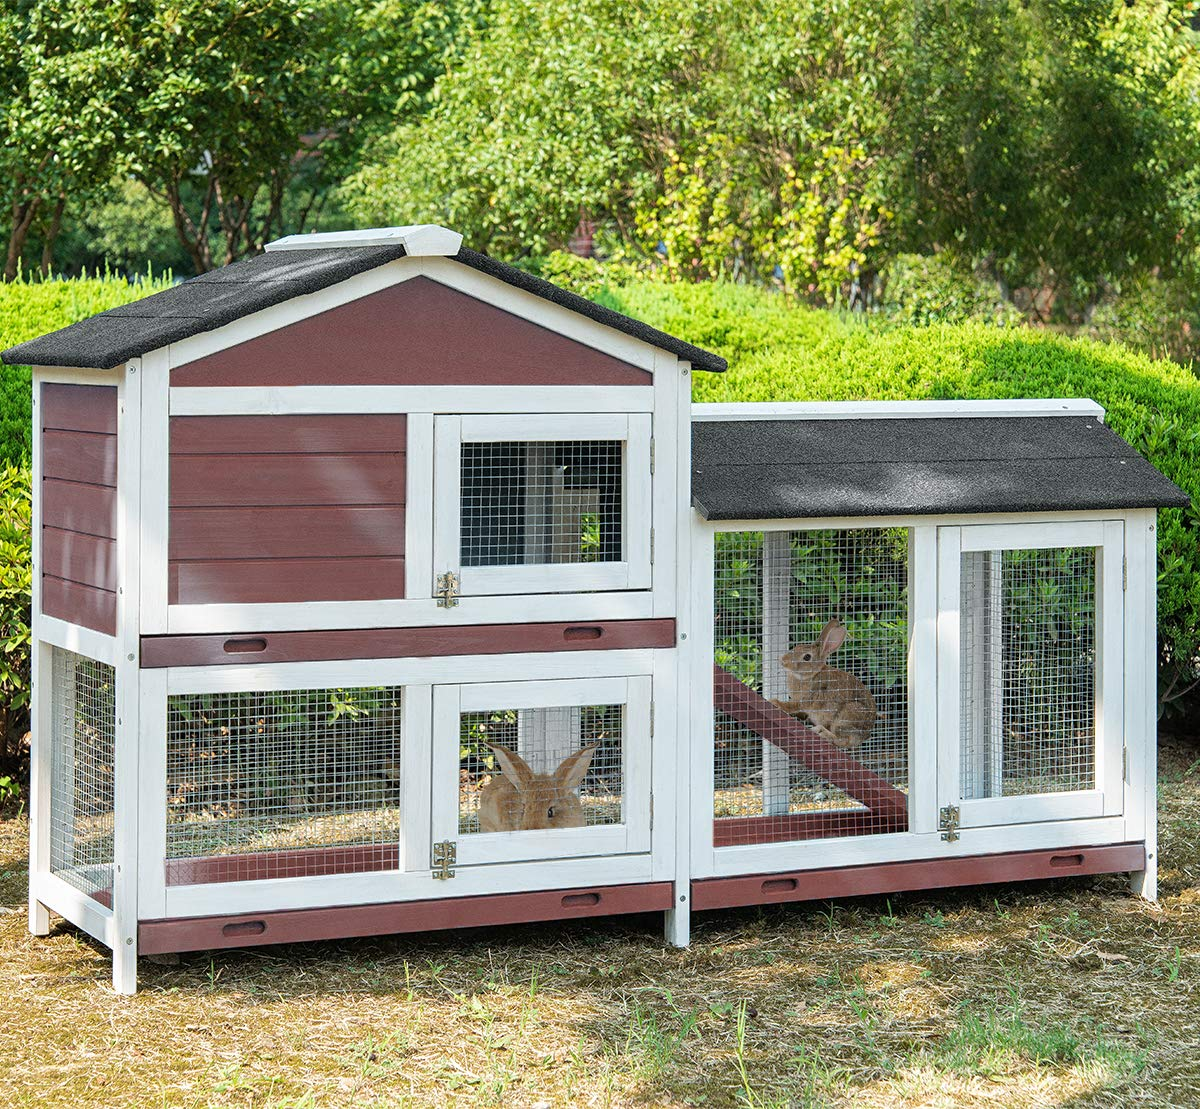 Purlove Pet Rabbit Hutch Wooden House Chicken Coop for Small Animals (Rabbit Hutch #4) by Purlove (Image #2)